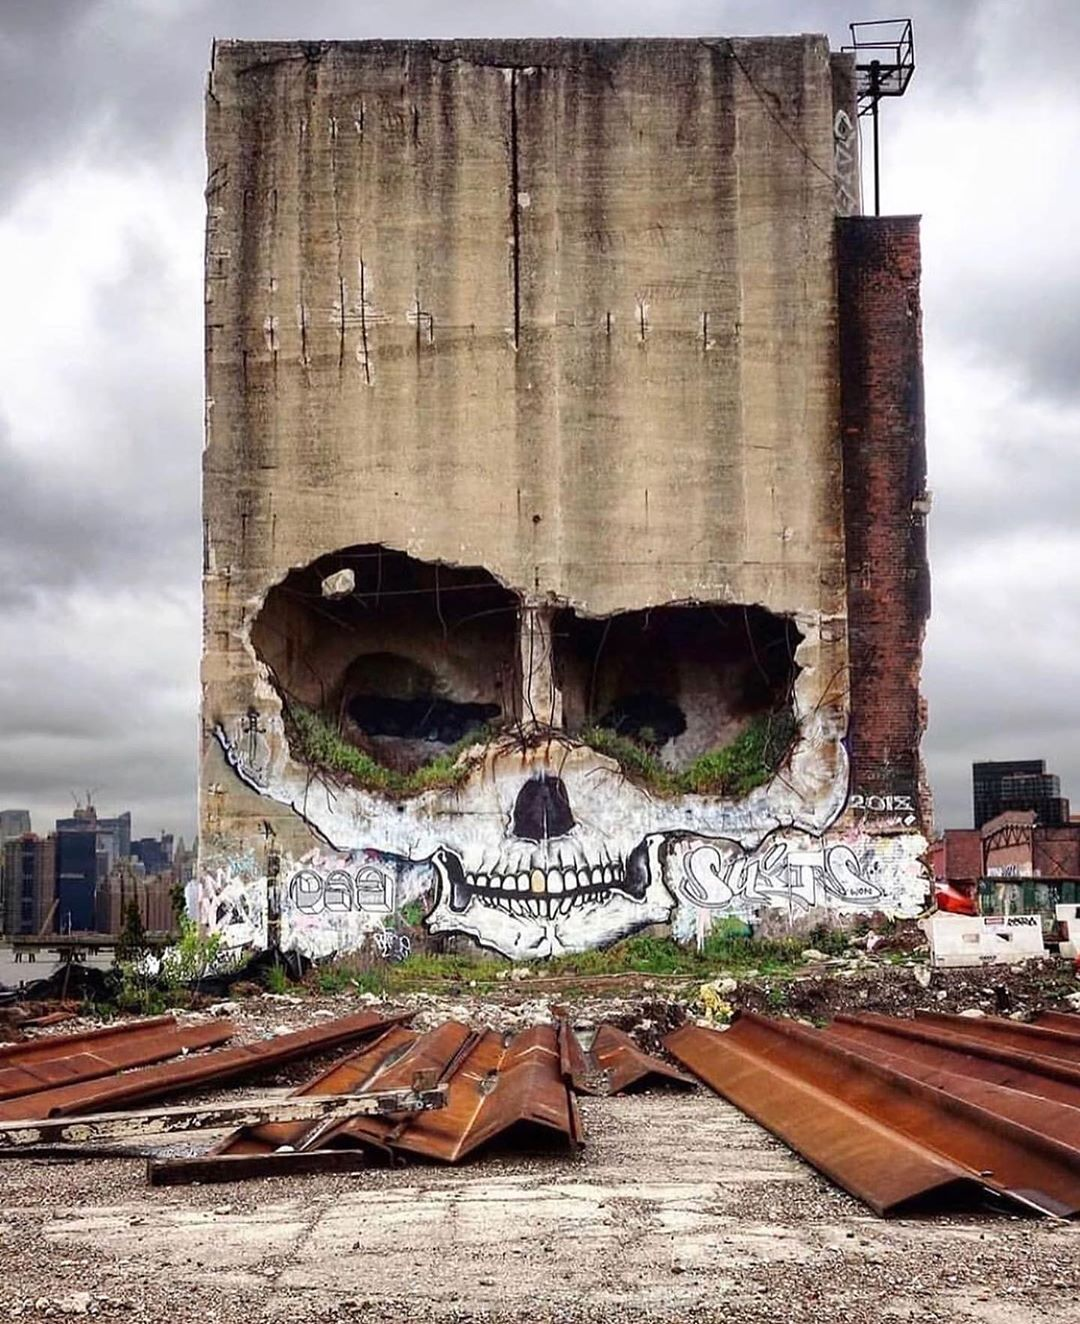 calavera graffiti